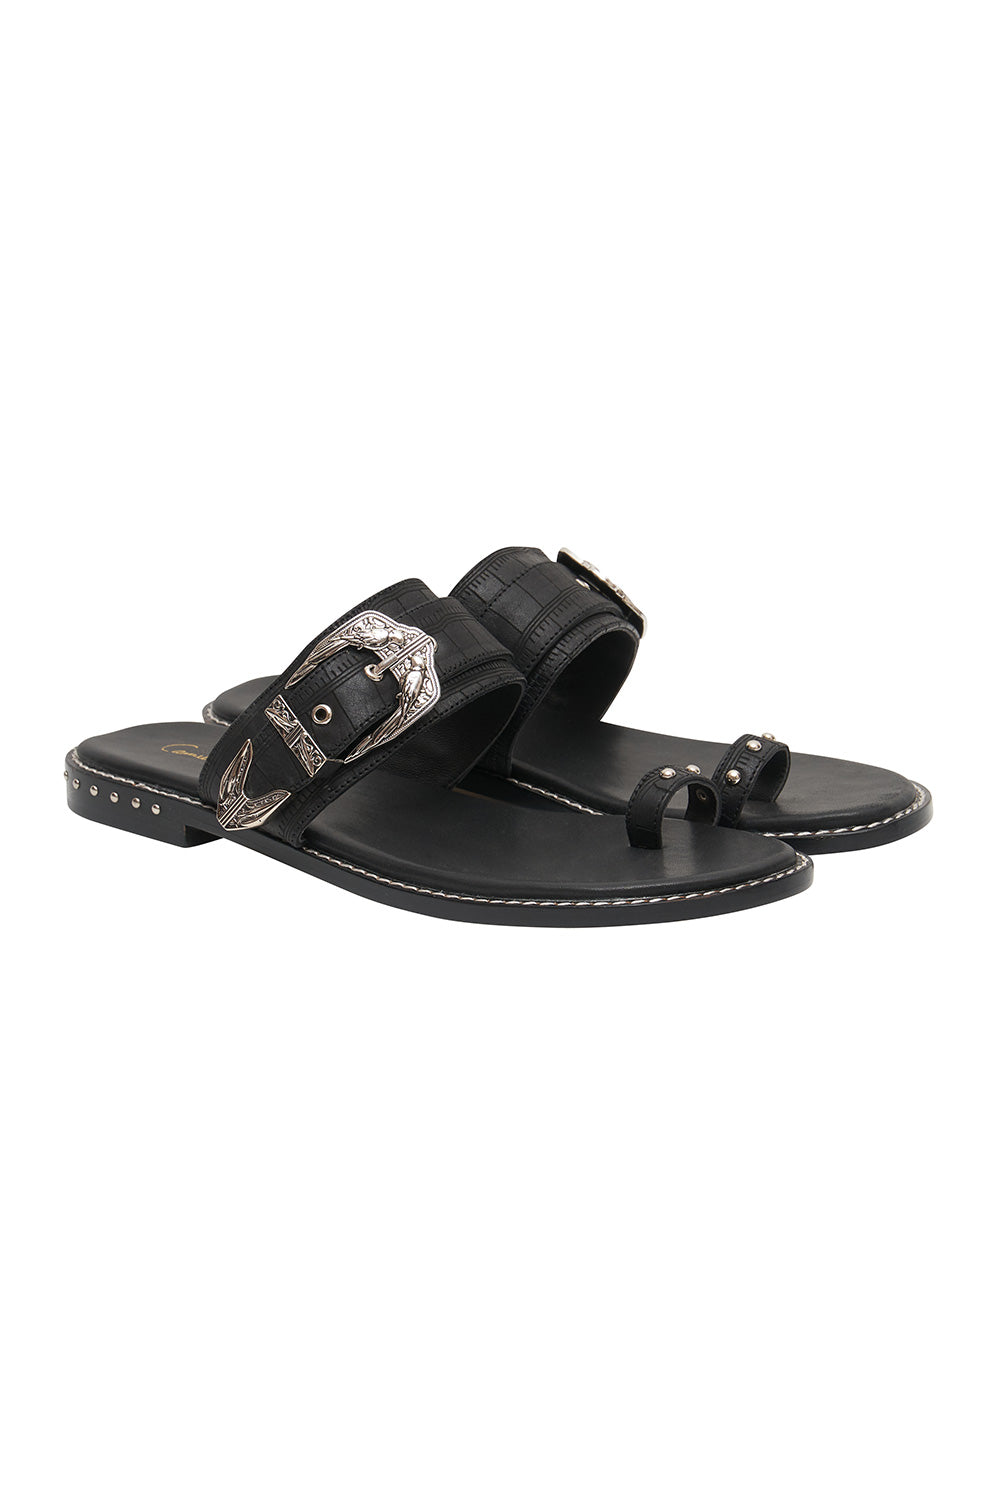 BIRD BUCKLE TOE LOOP SLIDE SOLID BLACK